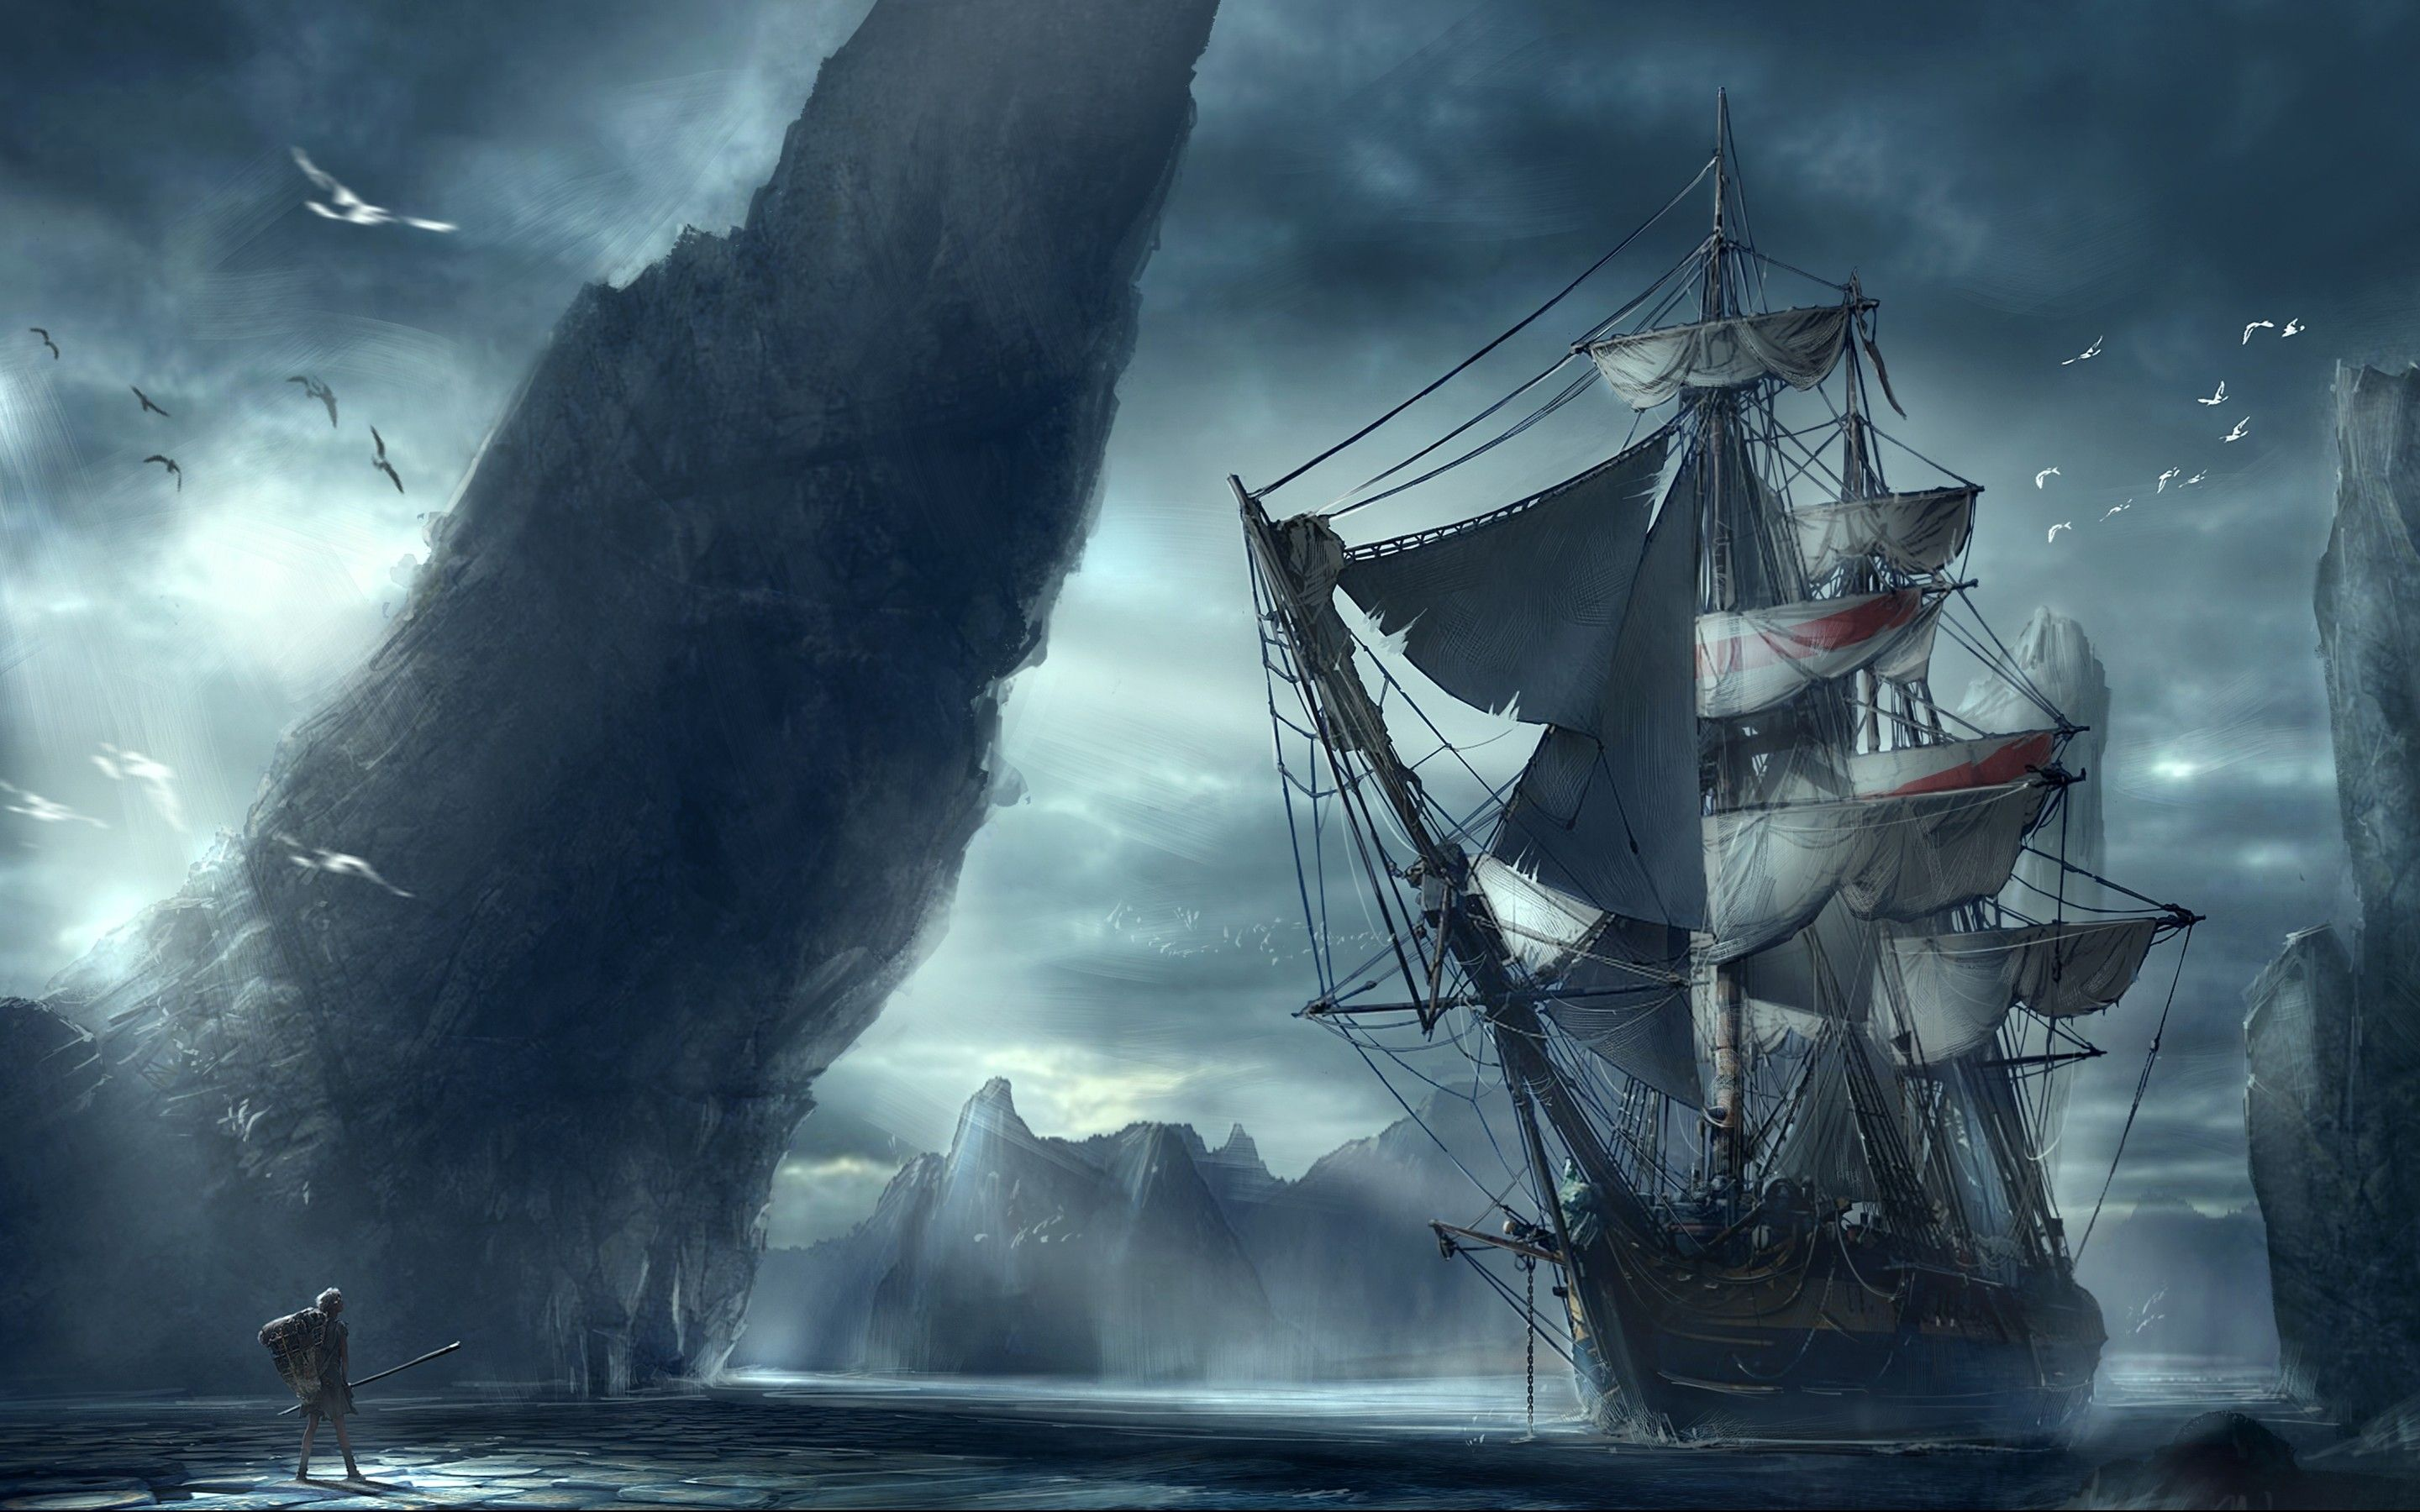 2880x1800 Ghost Pirate Ship Wallpaper Hd Ship Paintings Boat Illustration Boat Art